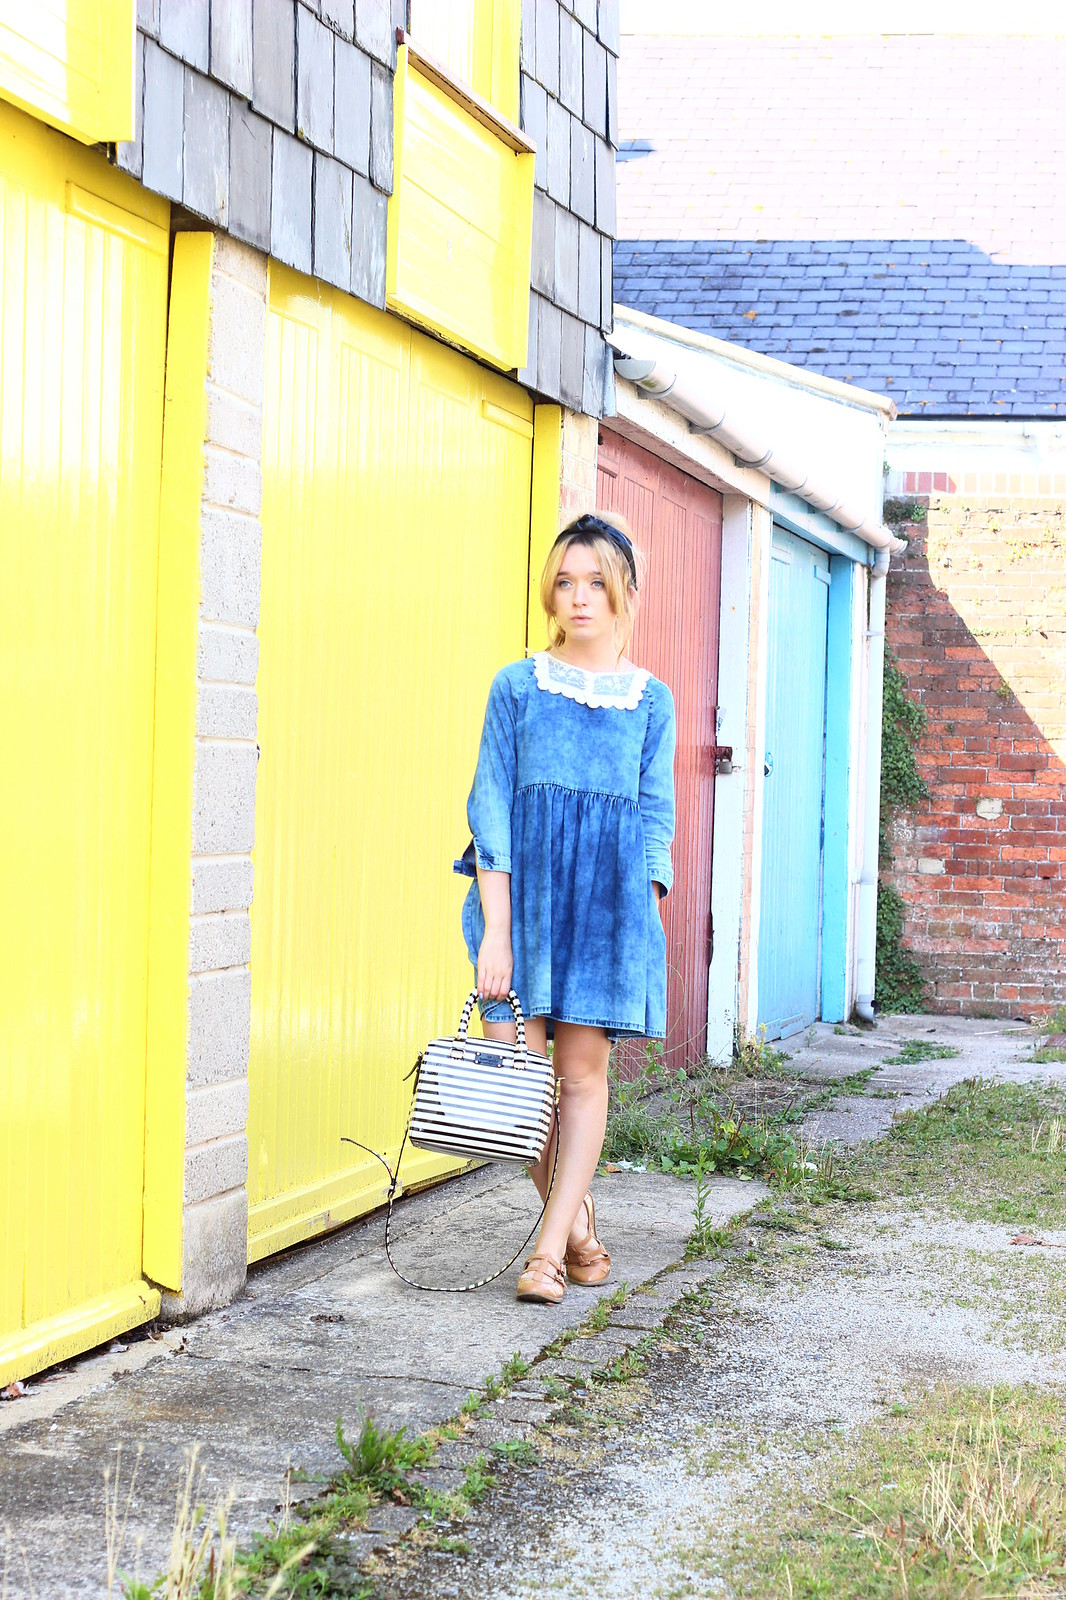 2denim, smock dress, lace collar , diy, vintage style